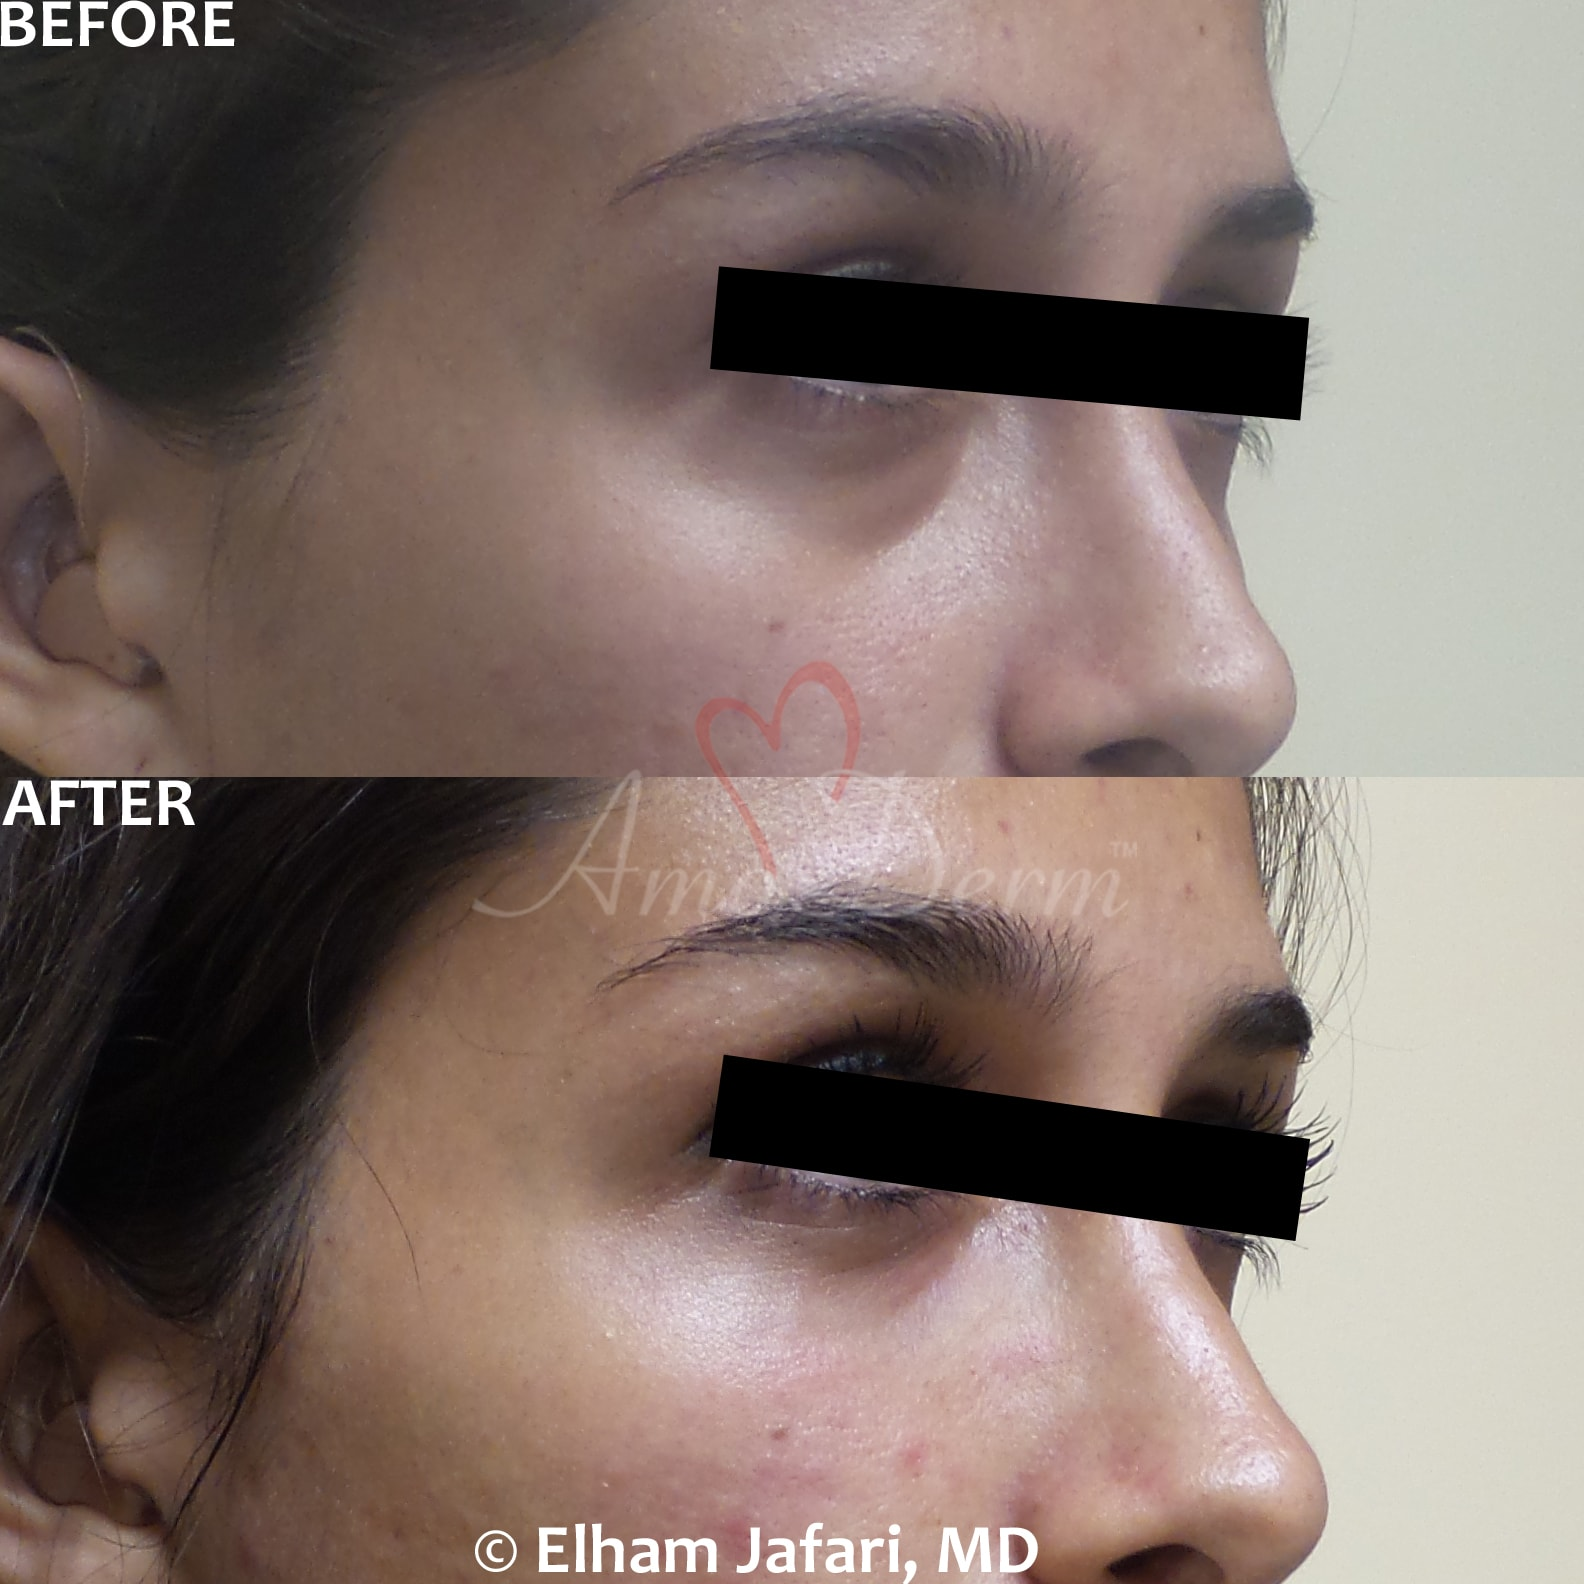 Treatment of dark circles under eyes using micro-cannula technique